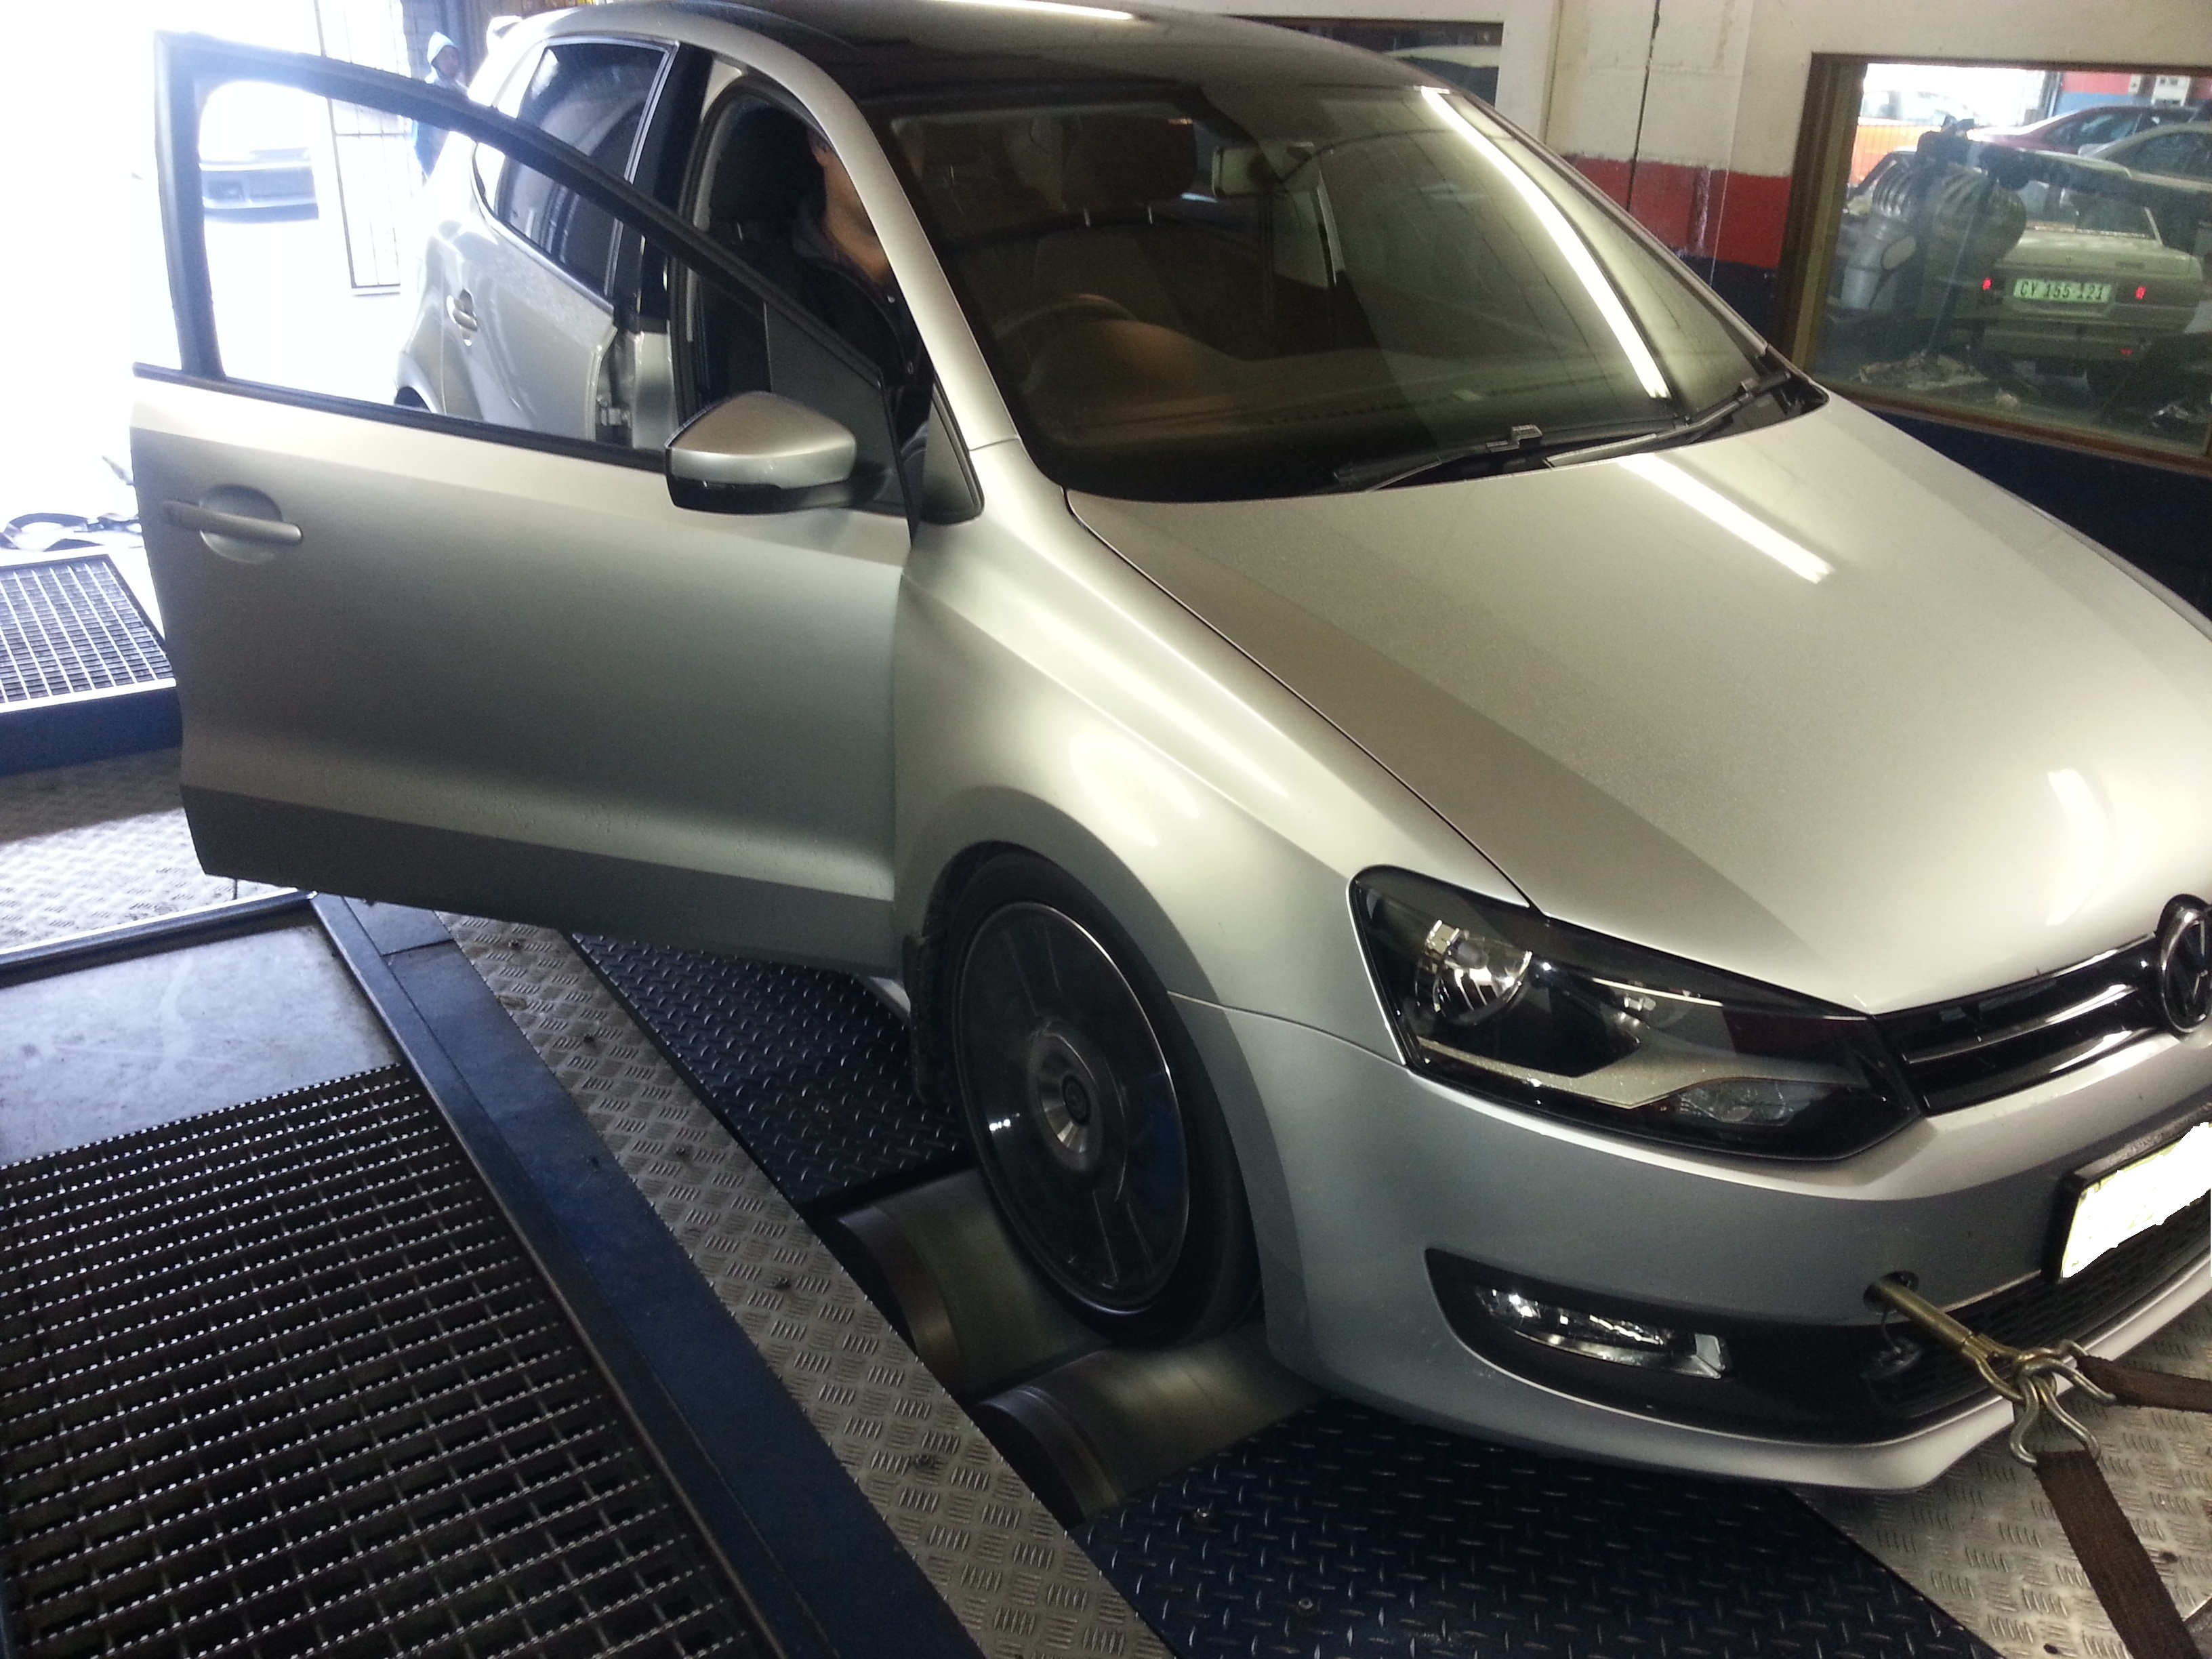 Vw Polo 6r 1 6 Tdi Sto Tuned Evolution Sto Mrctuning